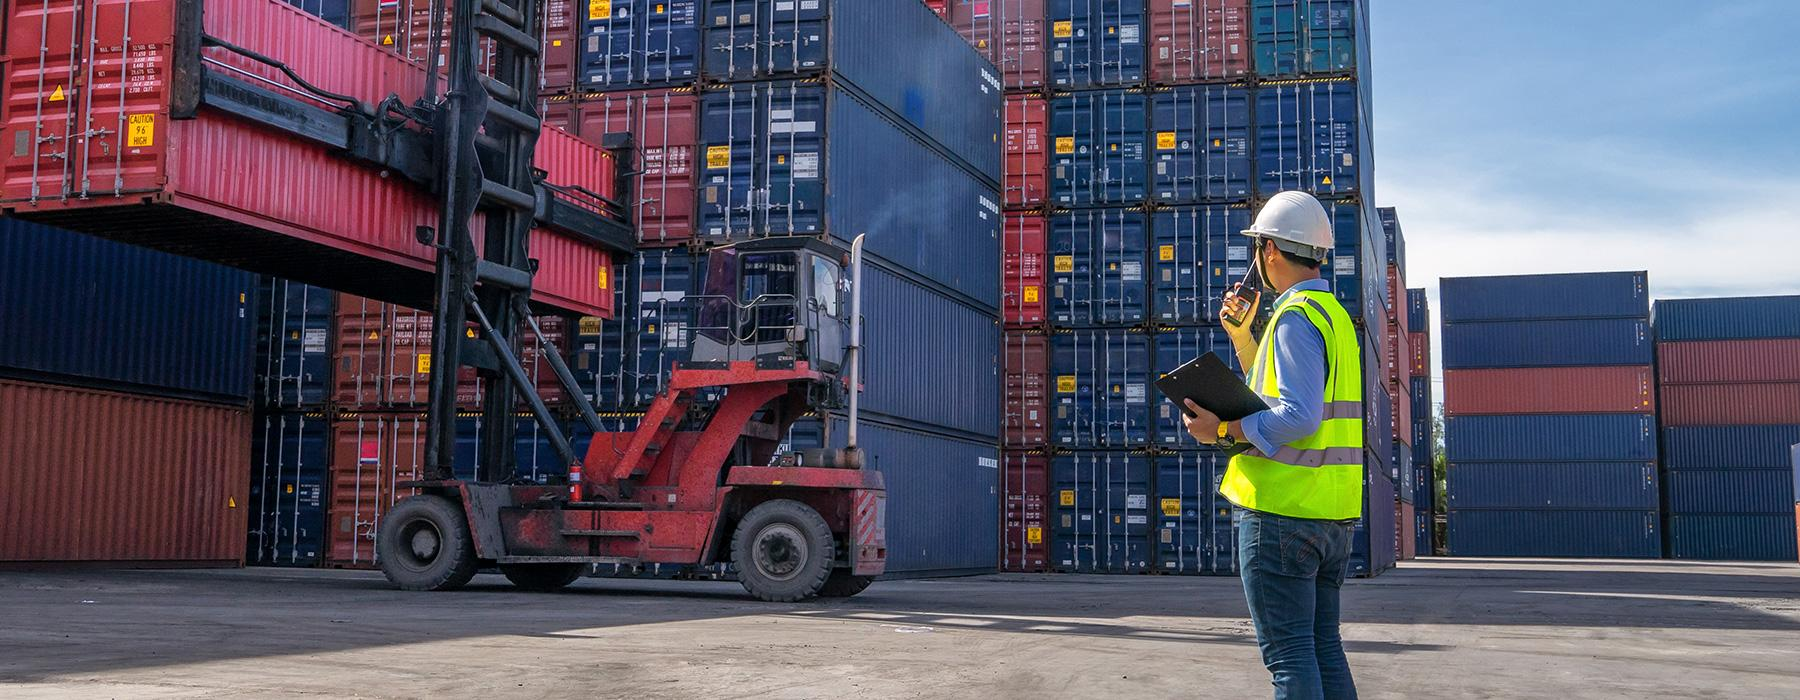 Image of containers with forklift truck